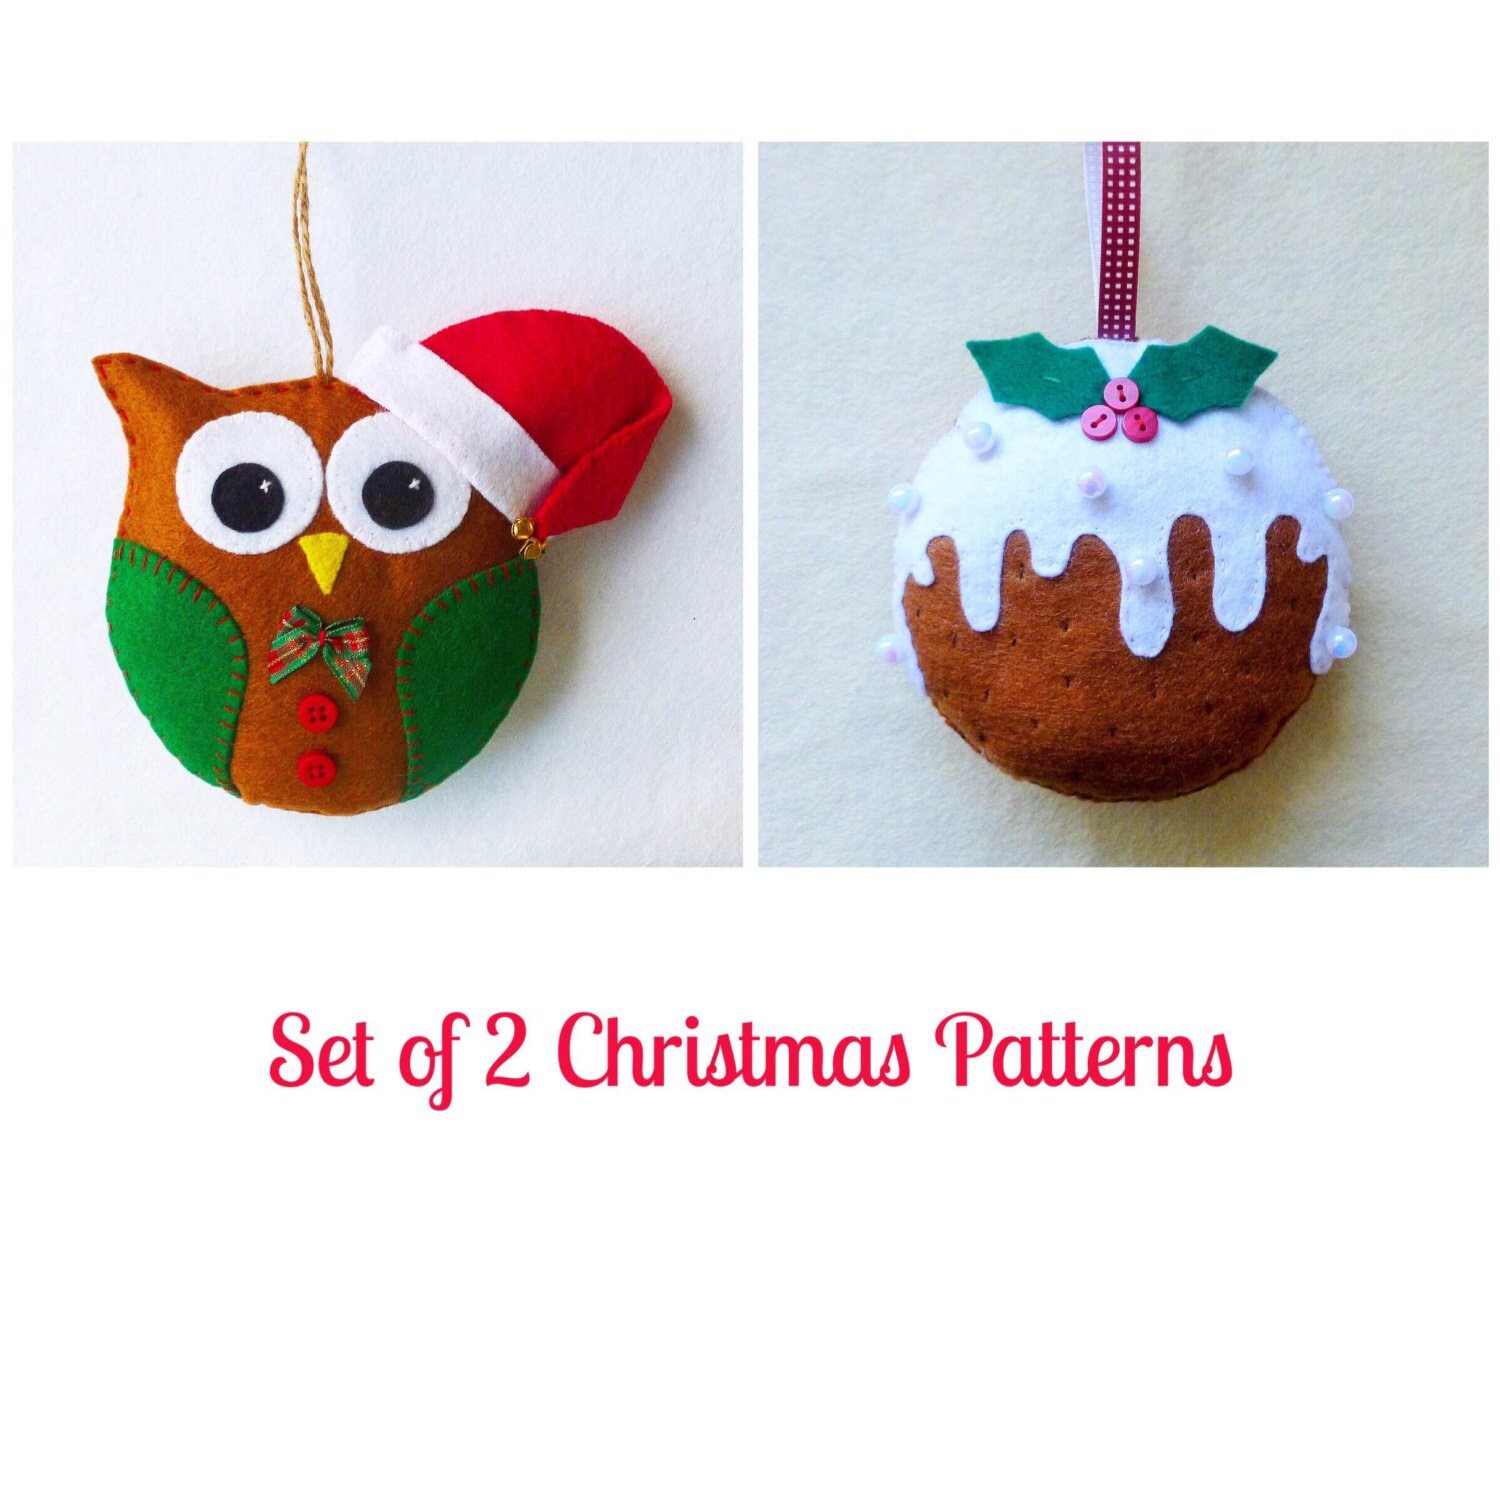 Christmas felt ornaments - Set Of 2 Felt Christmas Ornament Patterns Santa Owl And Christmas Pudding Tutorials